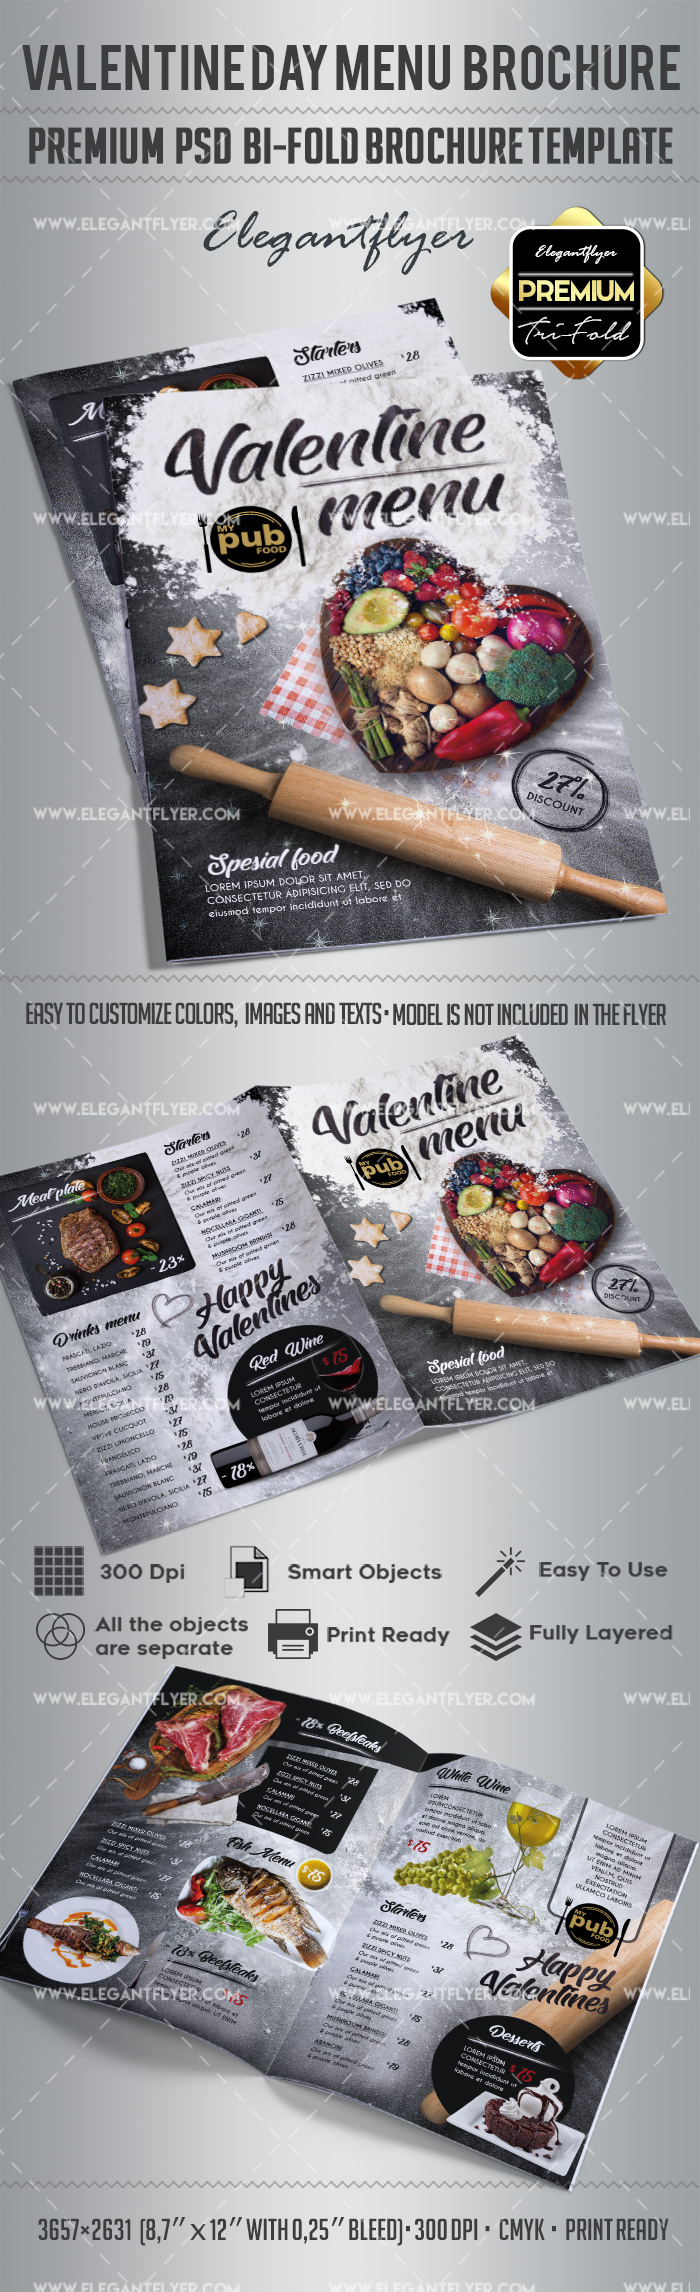 Valentines Day Brochure Template